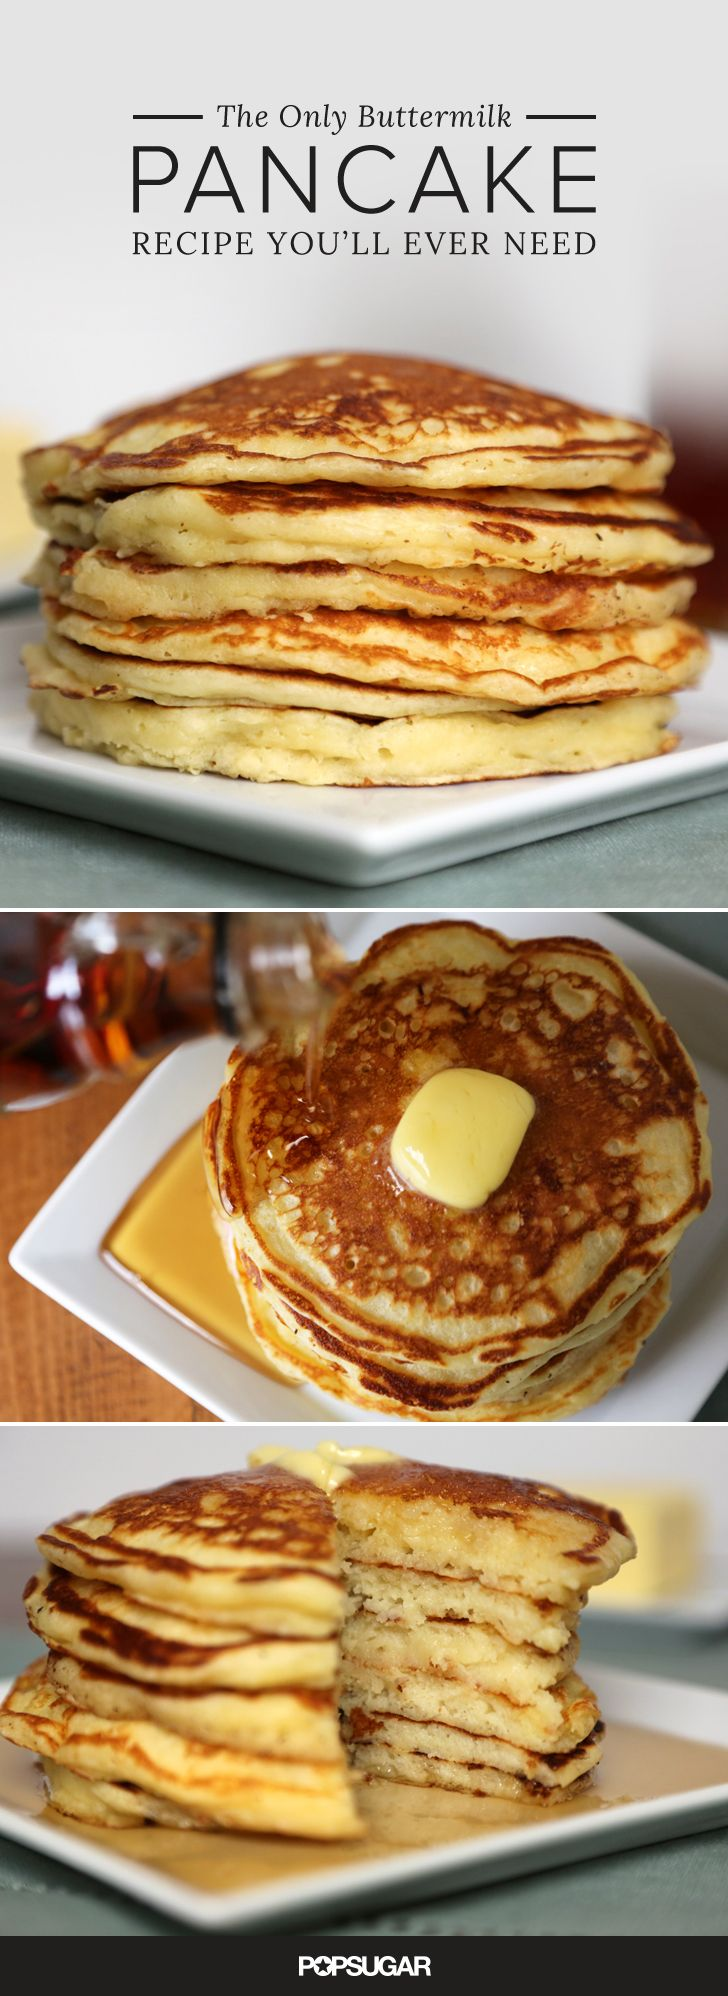 While many resort to pancake mix when making a special weekend breakfast, homemade pancakes are a must. Th